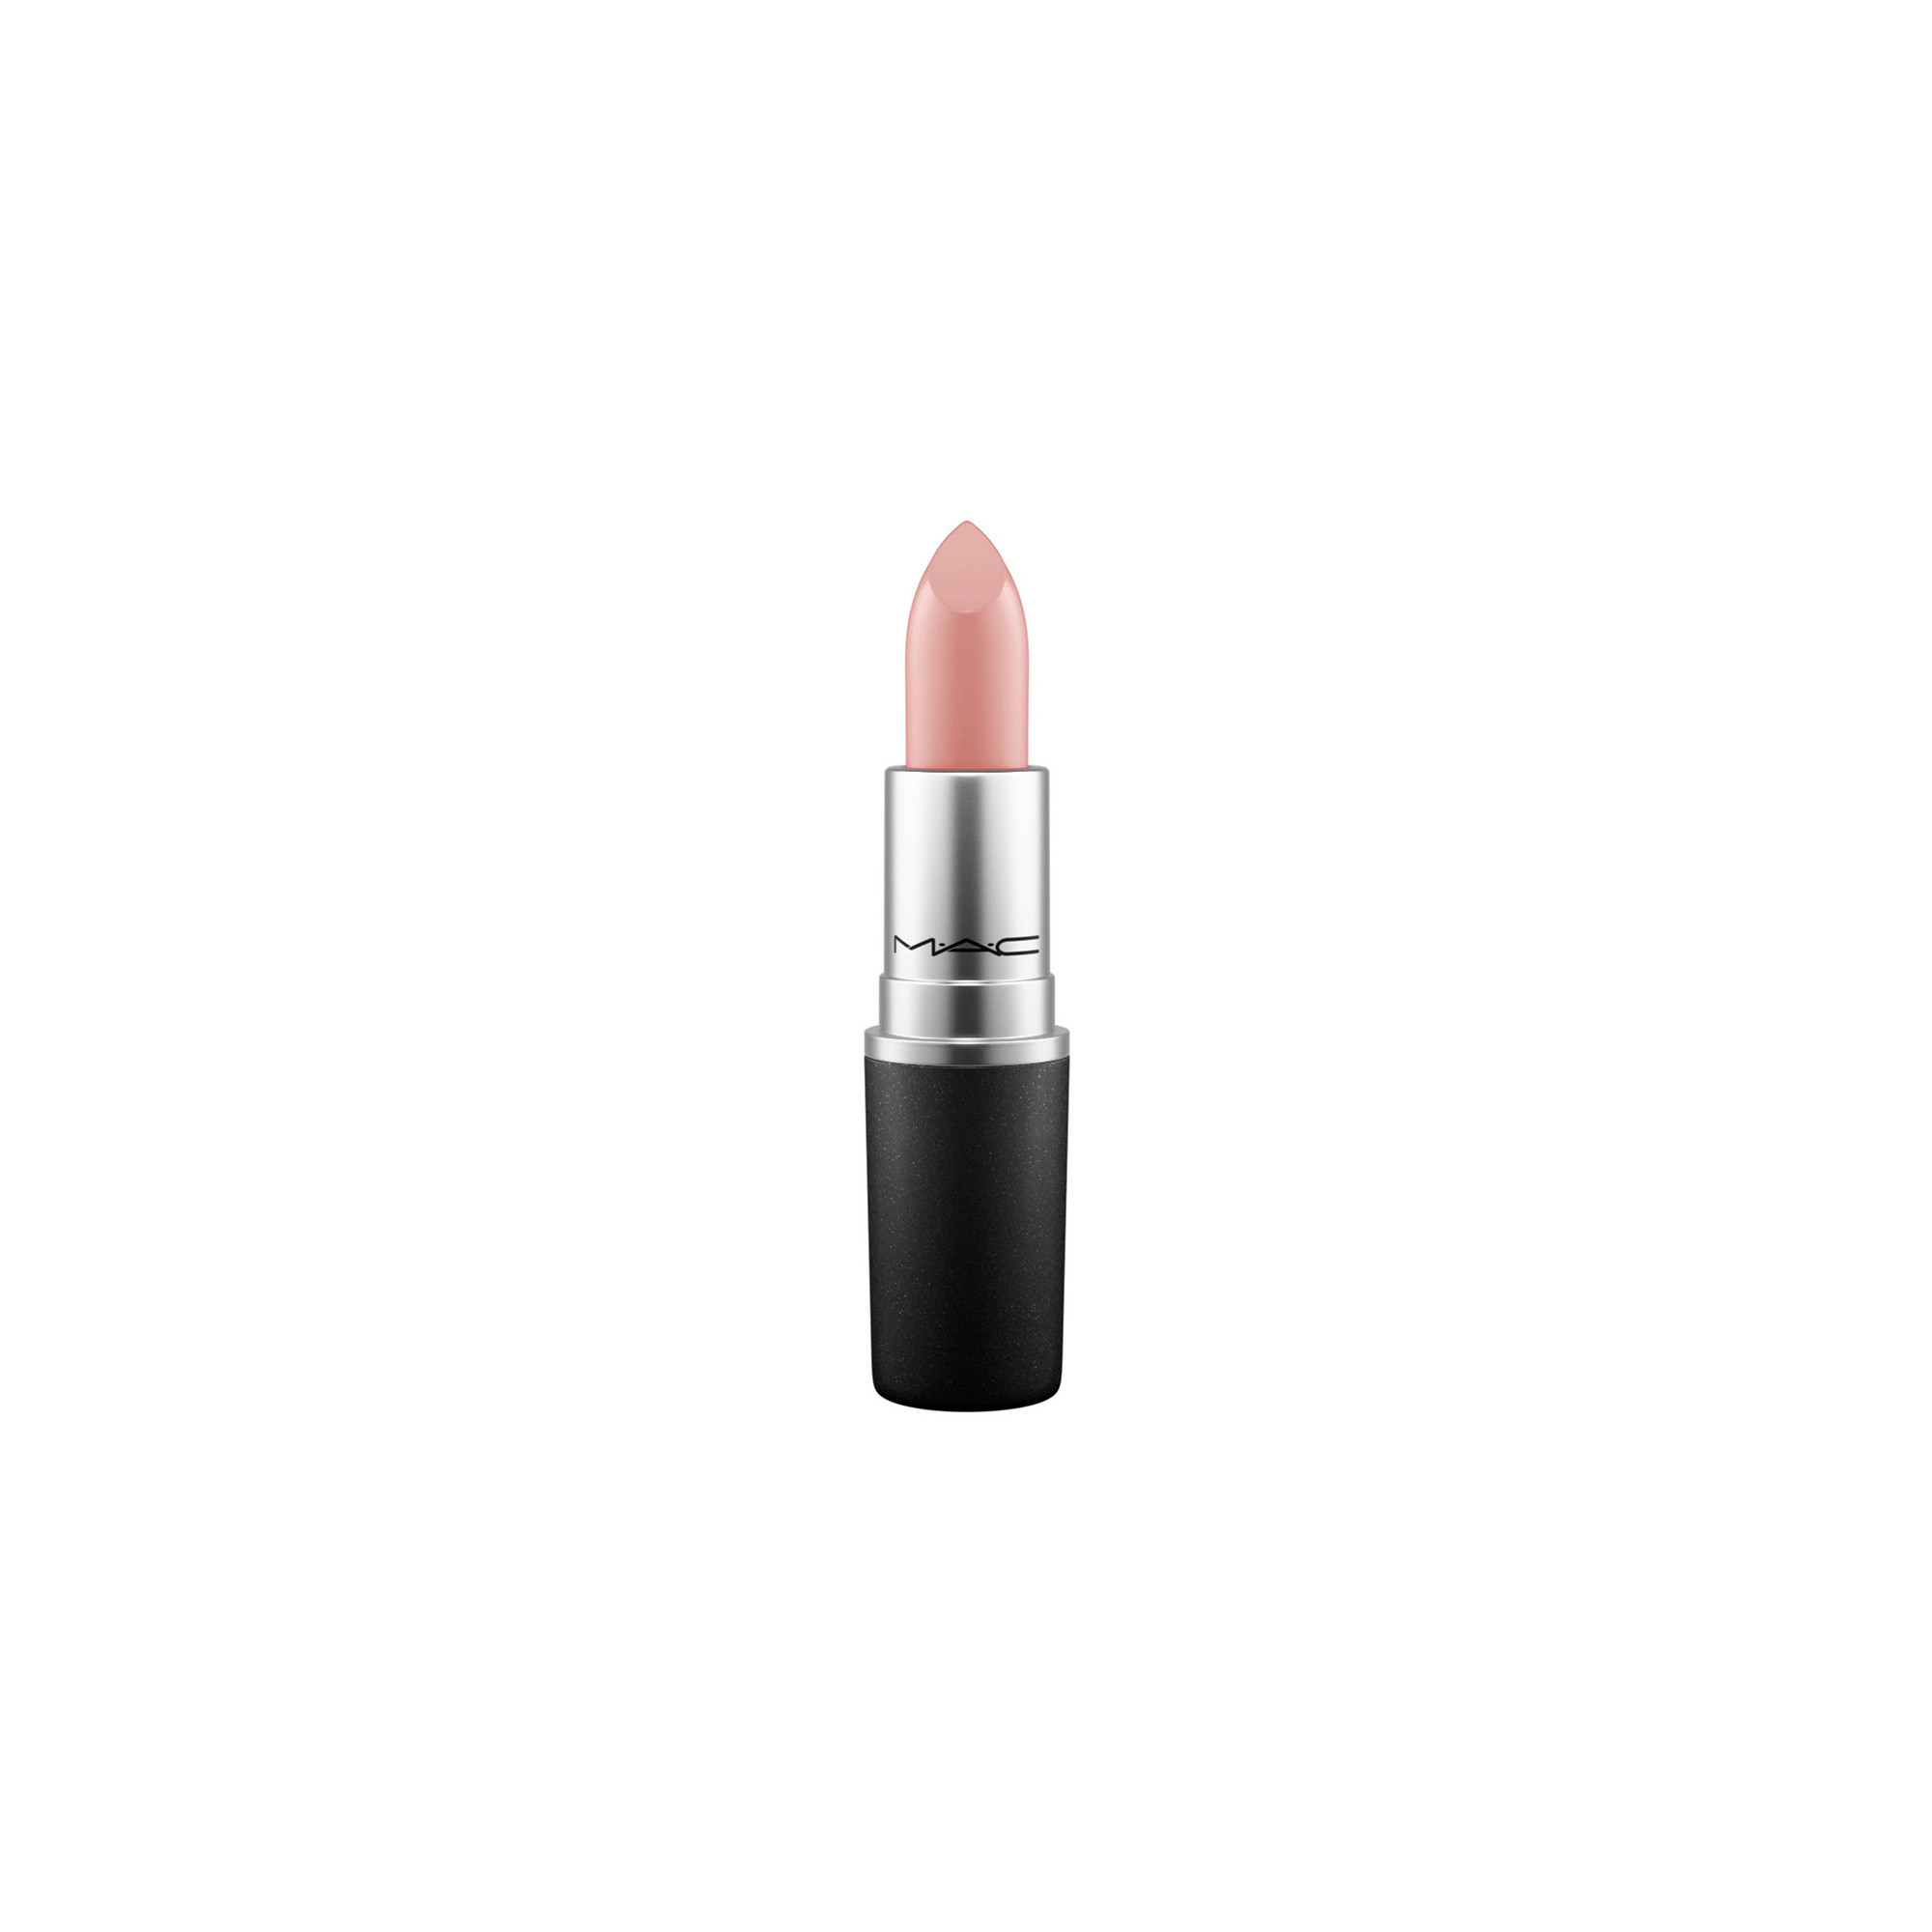 Amplified  Lipstick - Blankety, BLANKETY, large image number 0